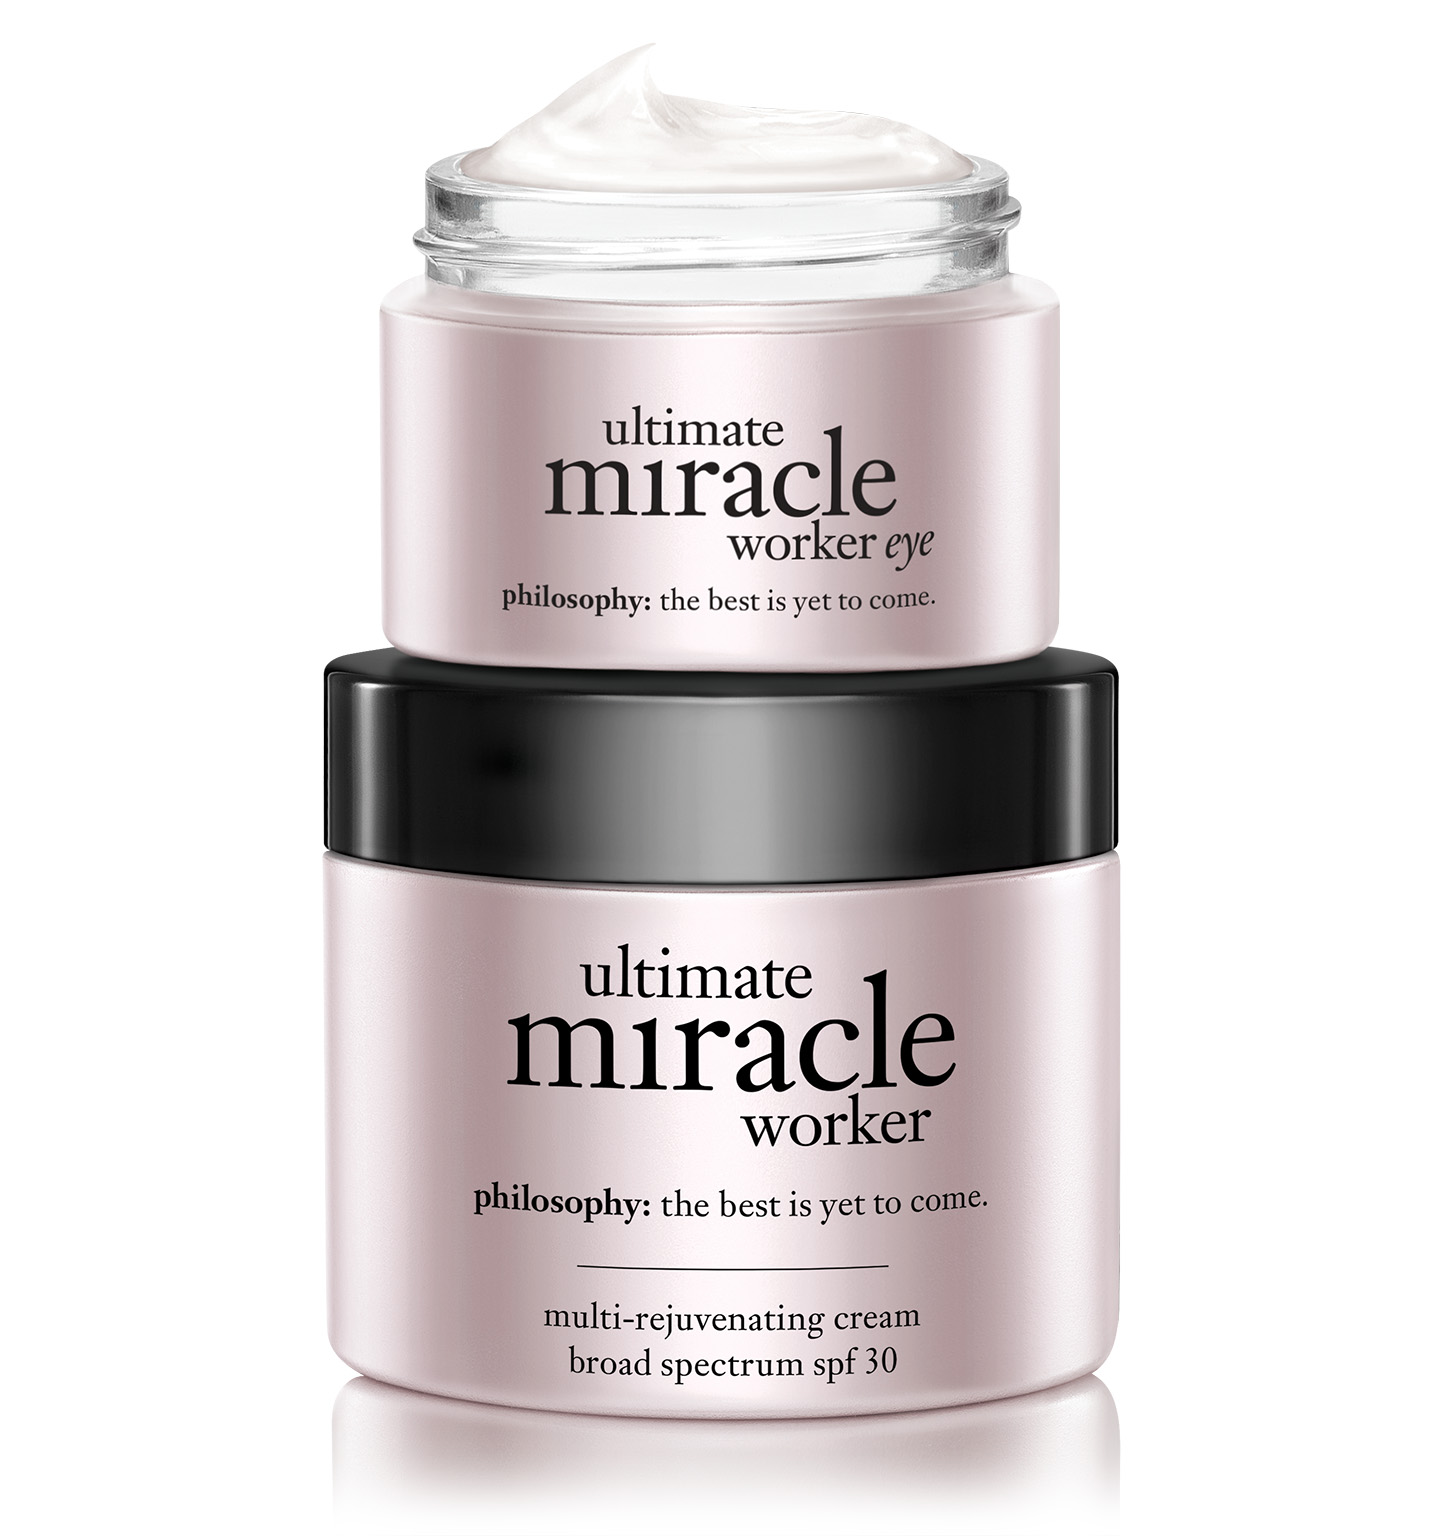 philosophy, ultimate miracle worker day eye duo